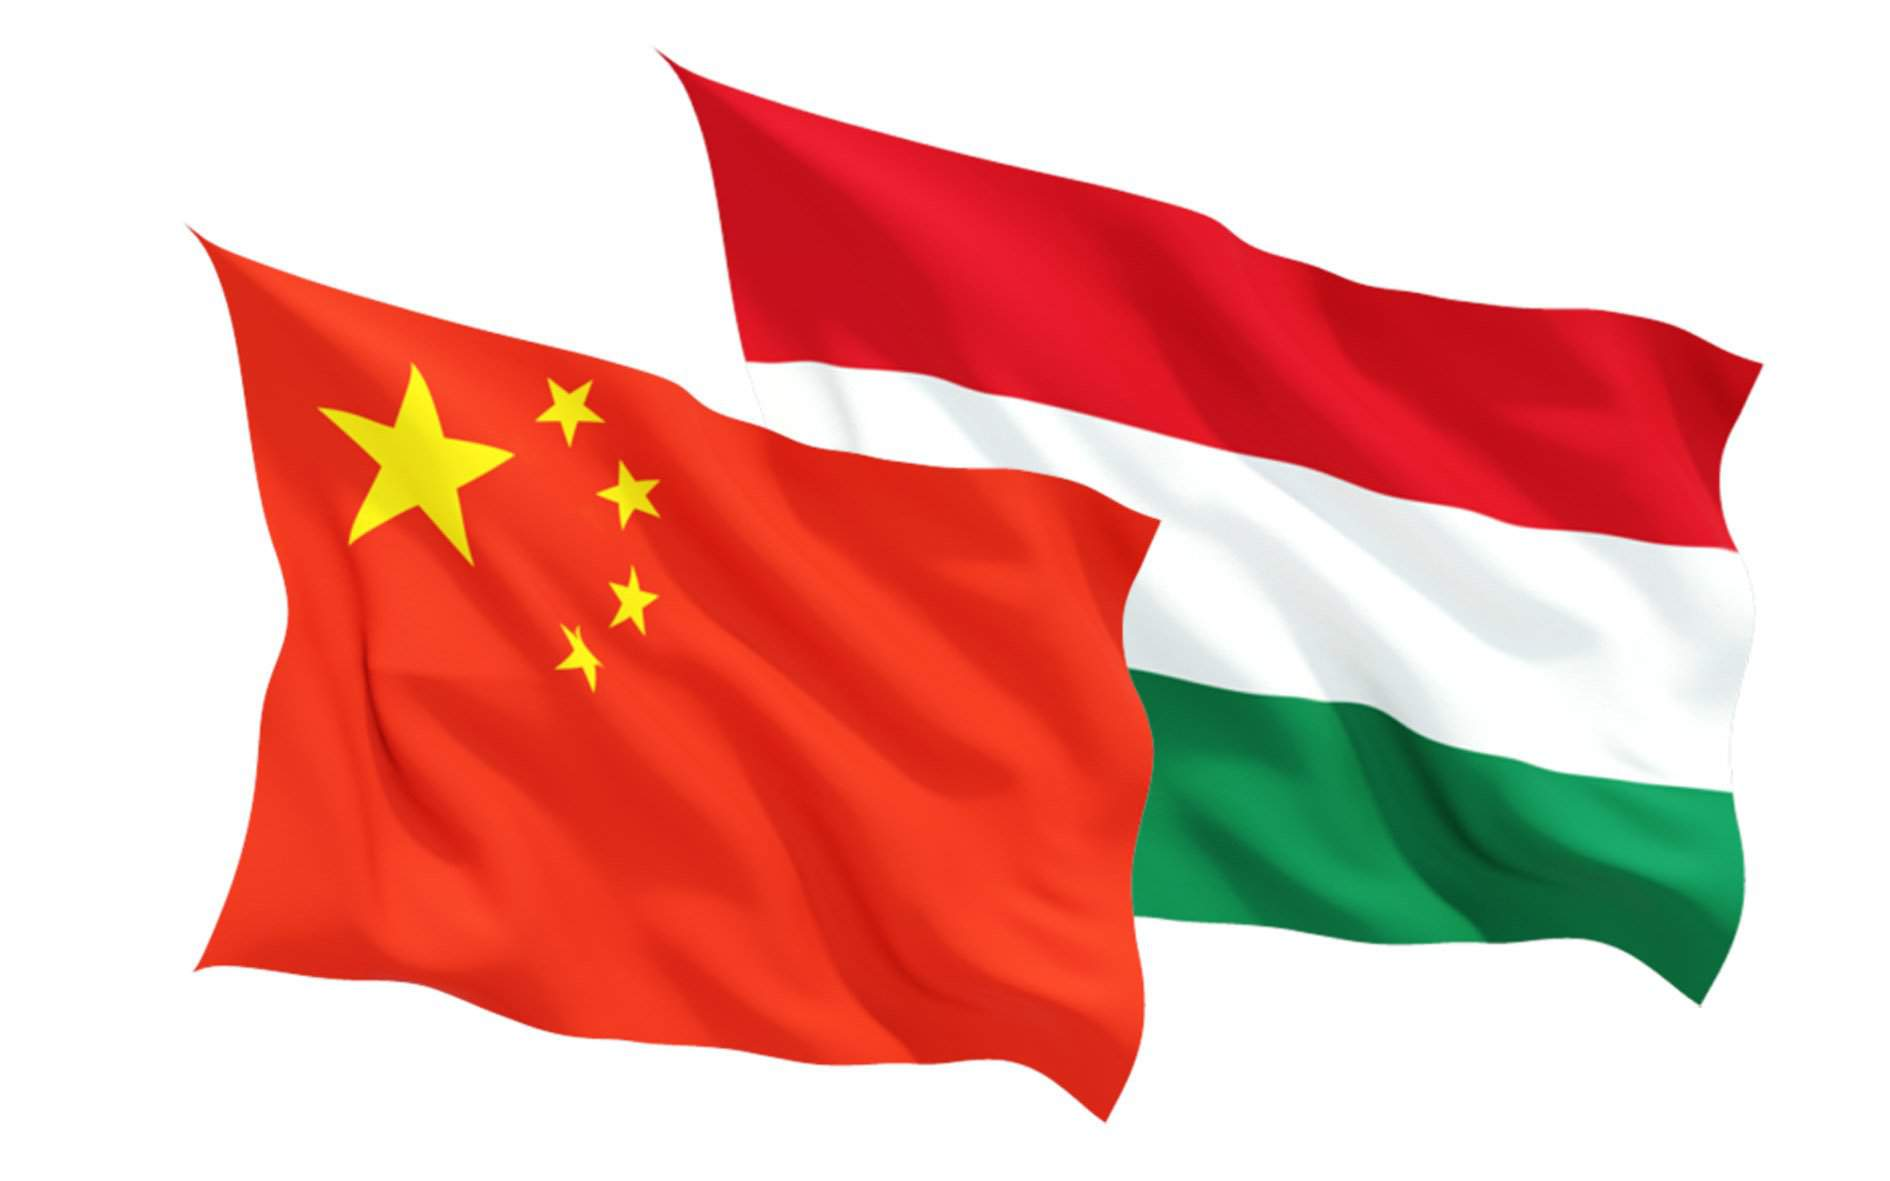 Huge investment: Chinese automotive company to open a factory in Hungary